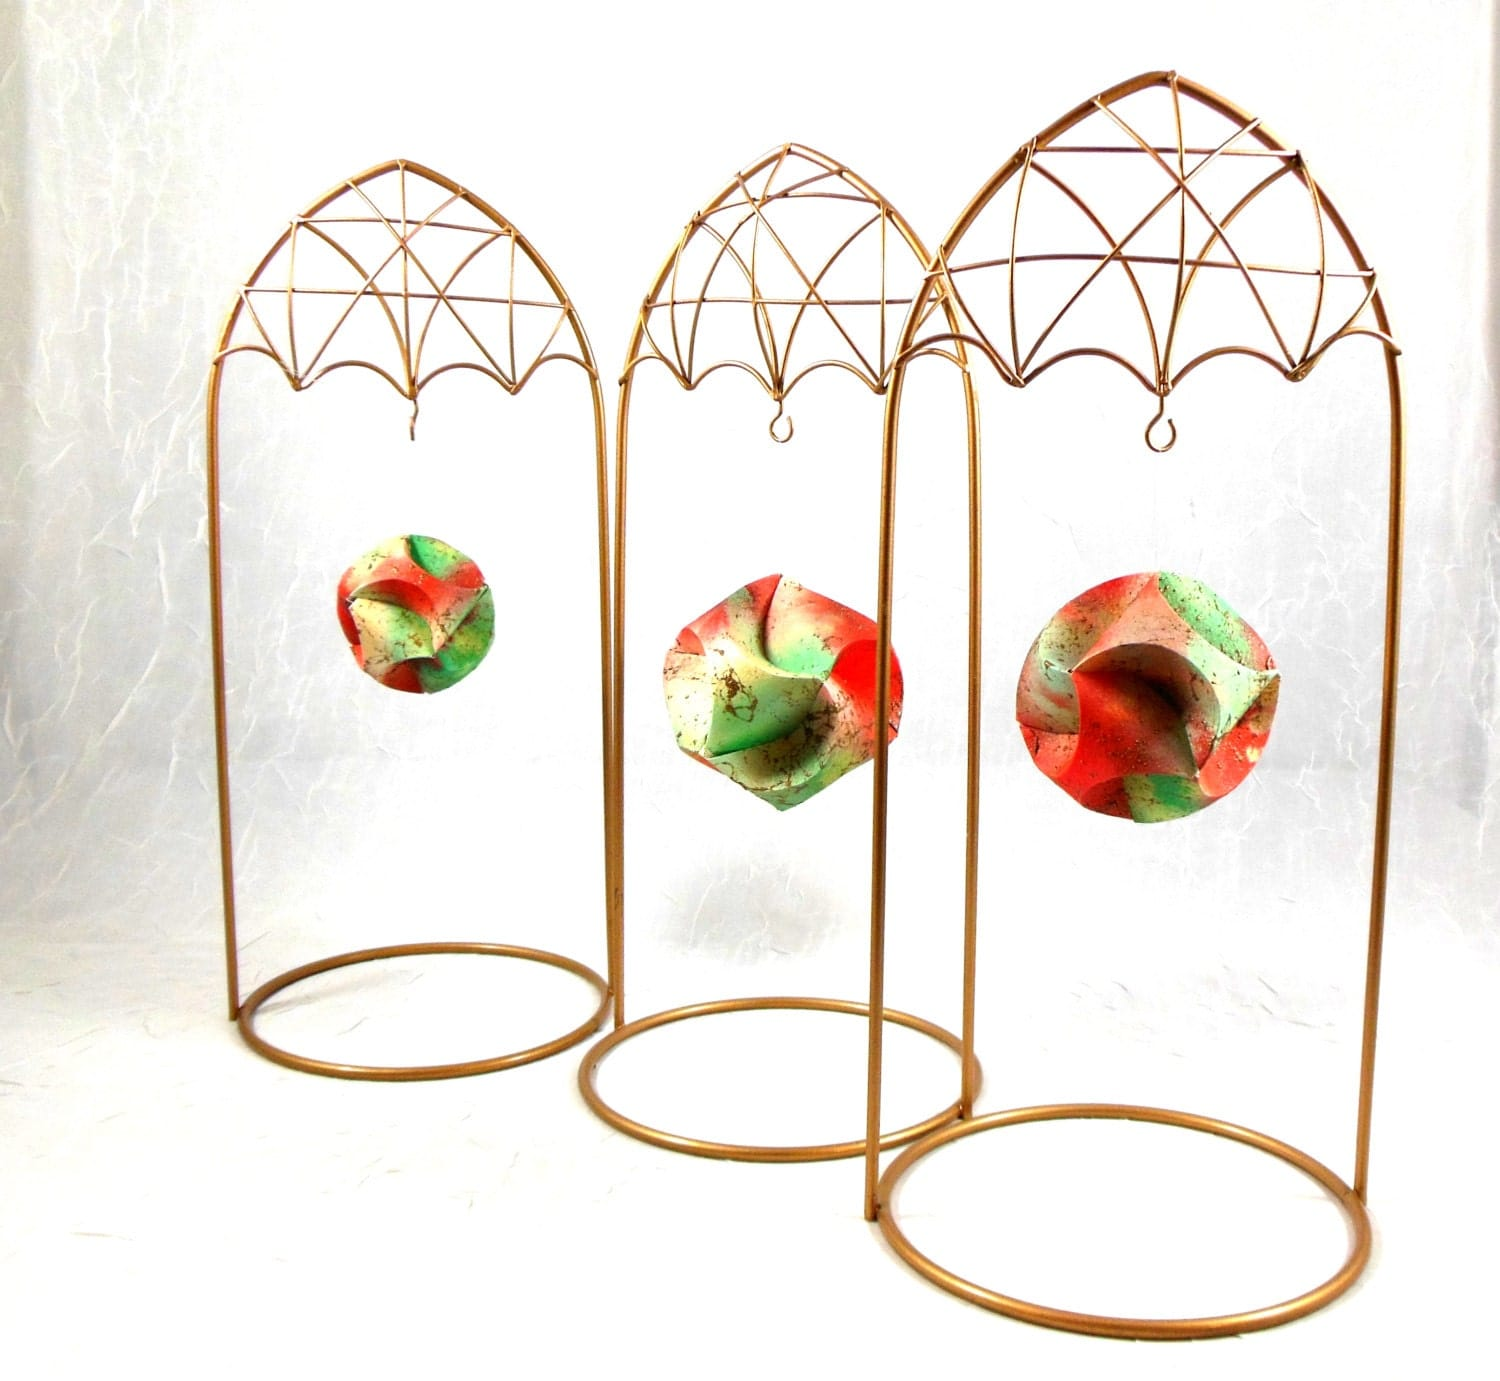 Gold Wire Ornament Stands Display for Ornaments Christmas